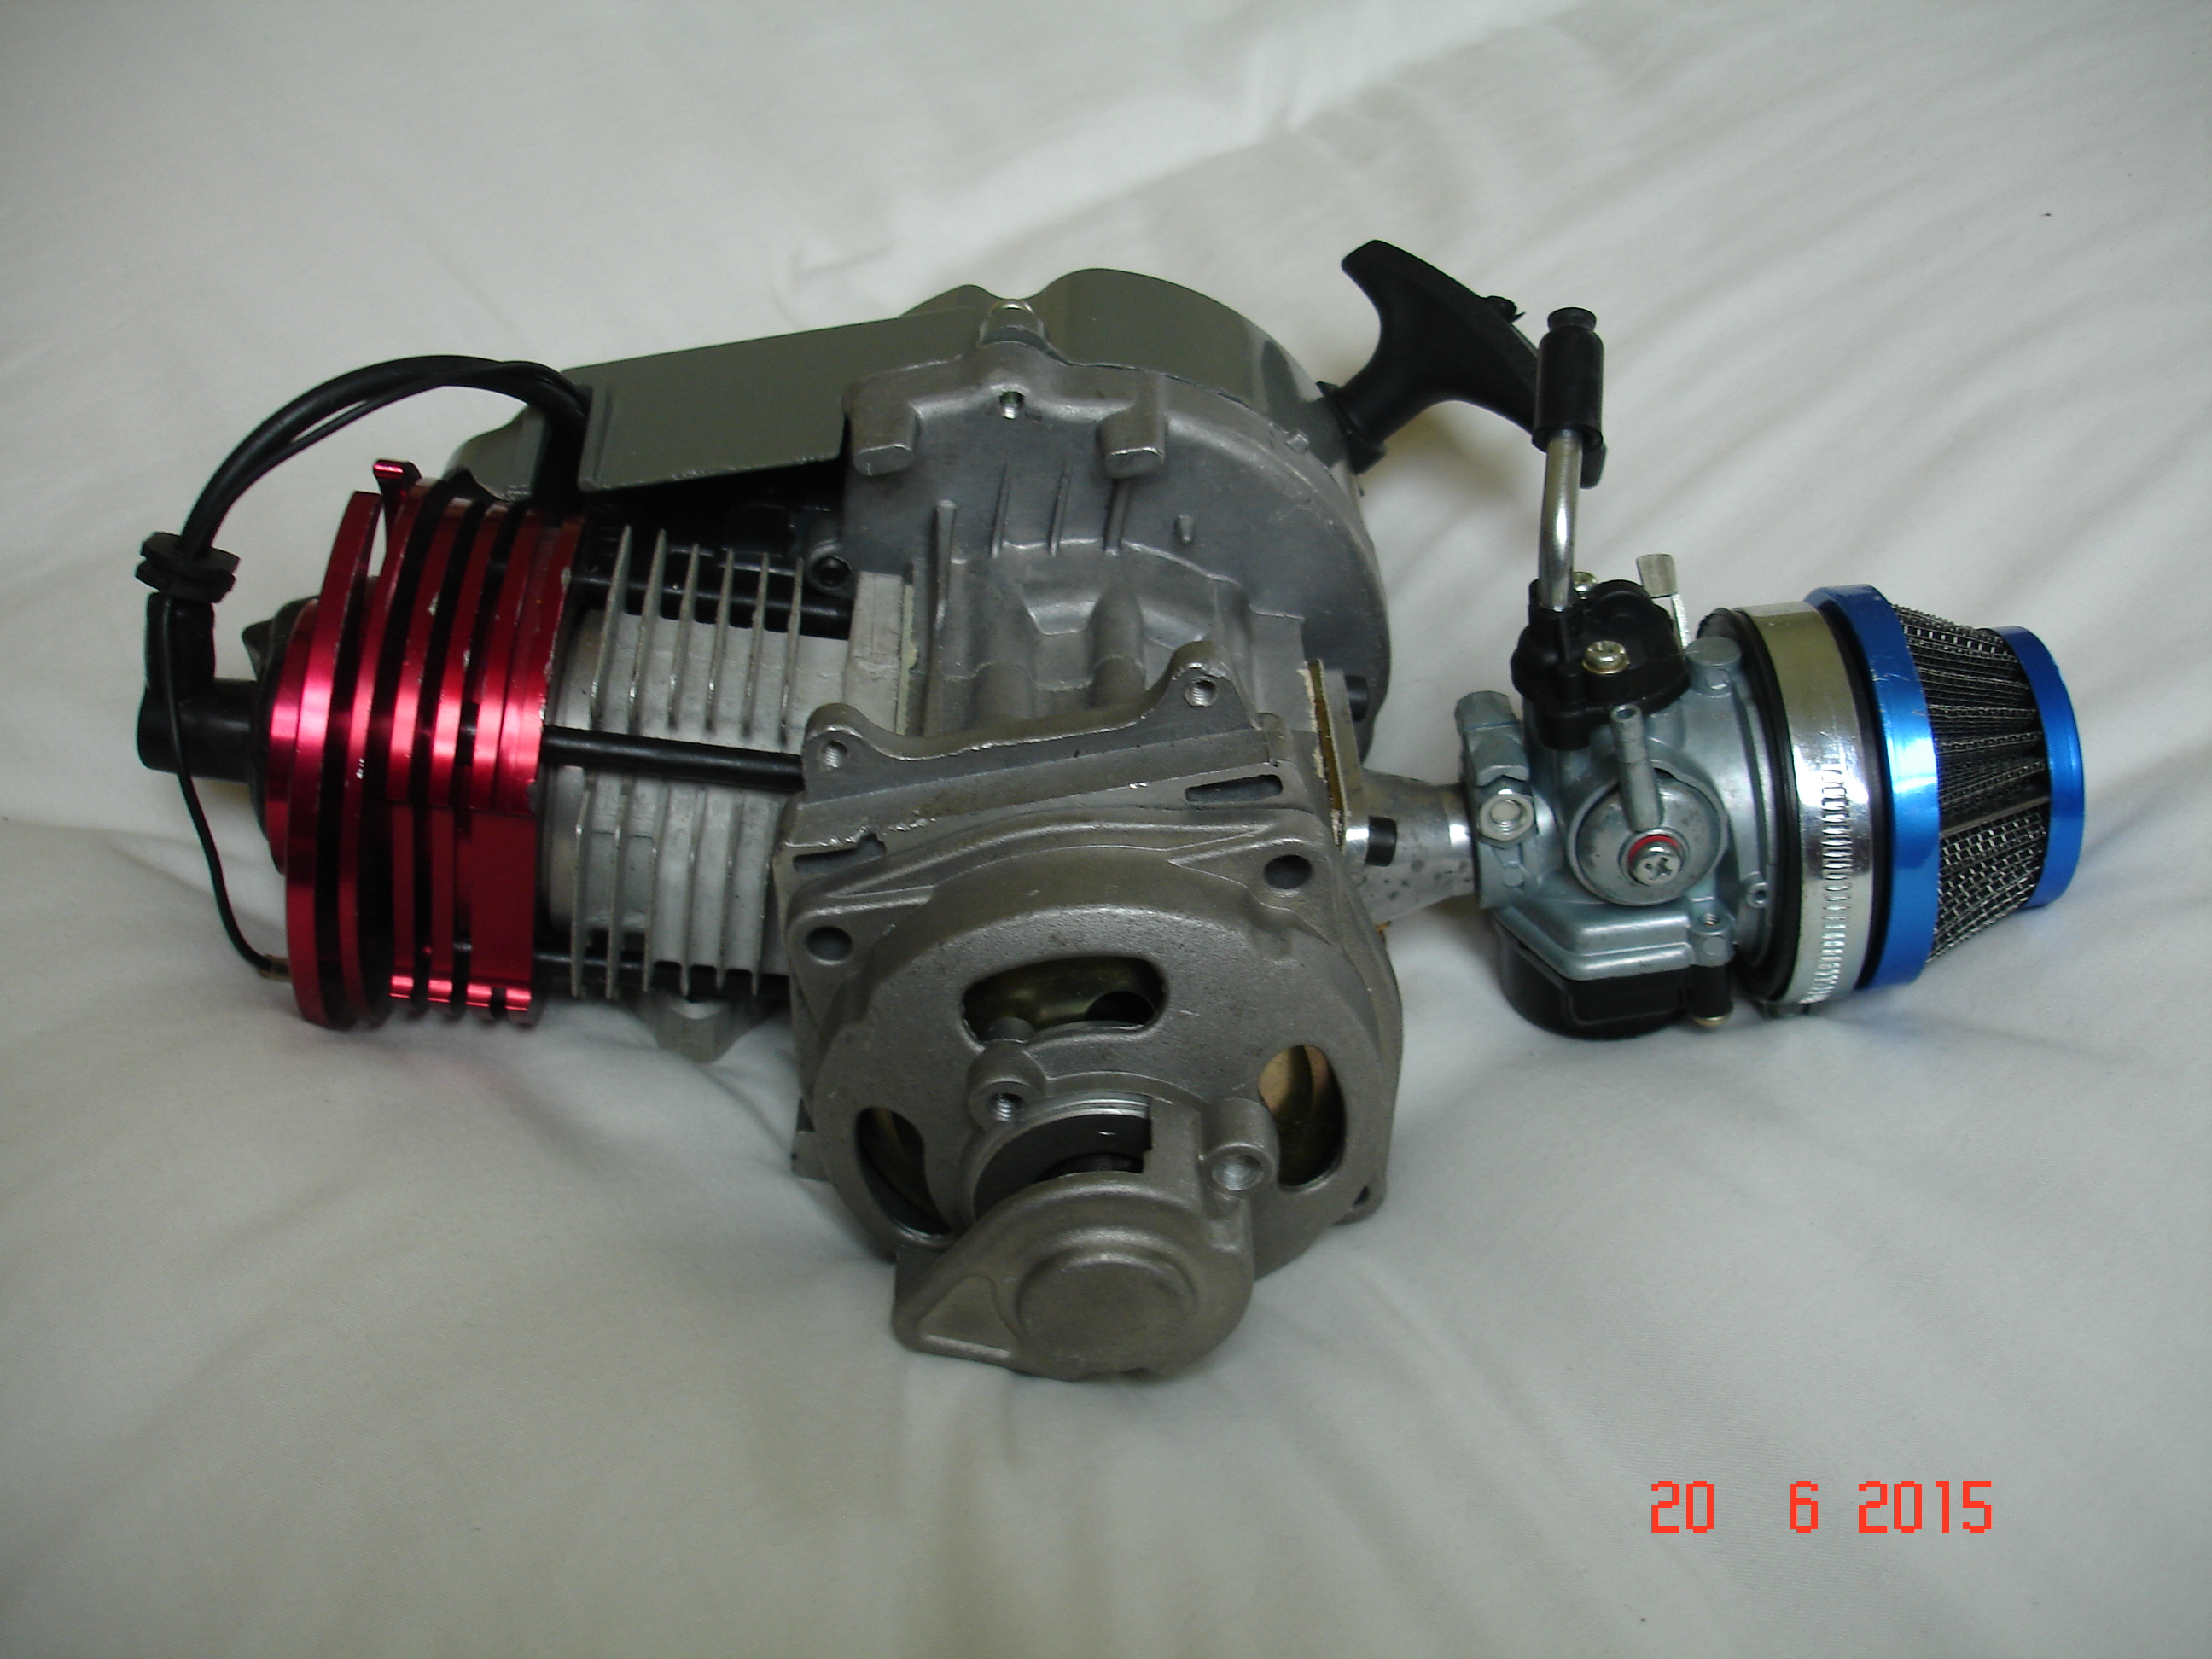 MINIMOTO RACE ENGINE FOR SALE